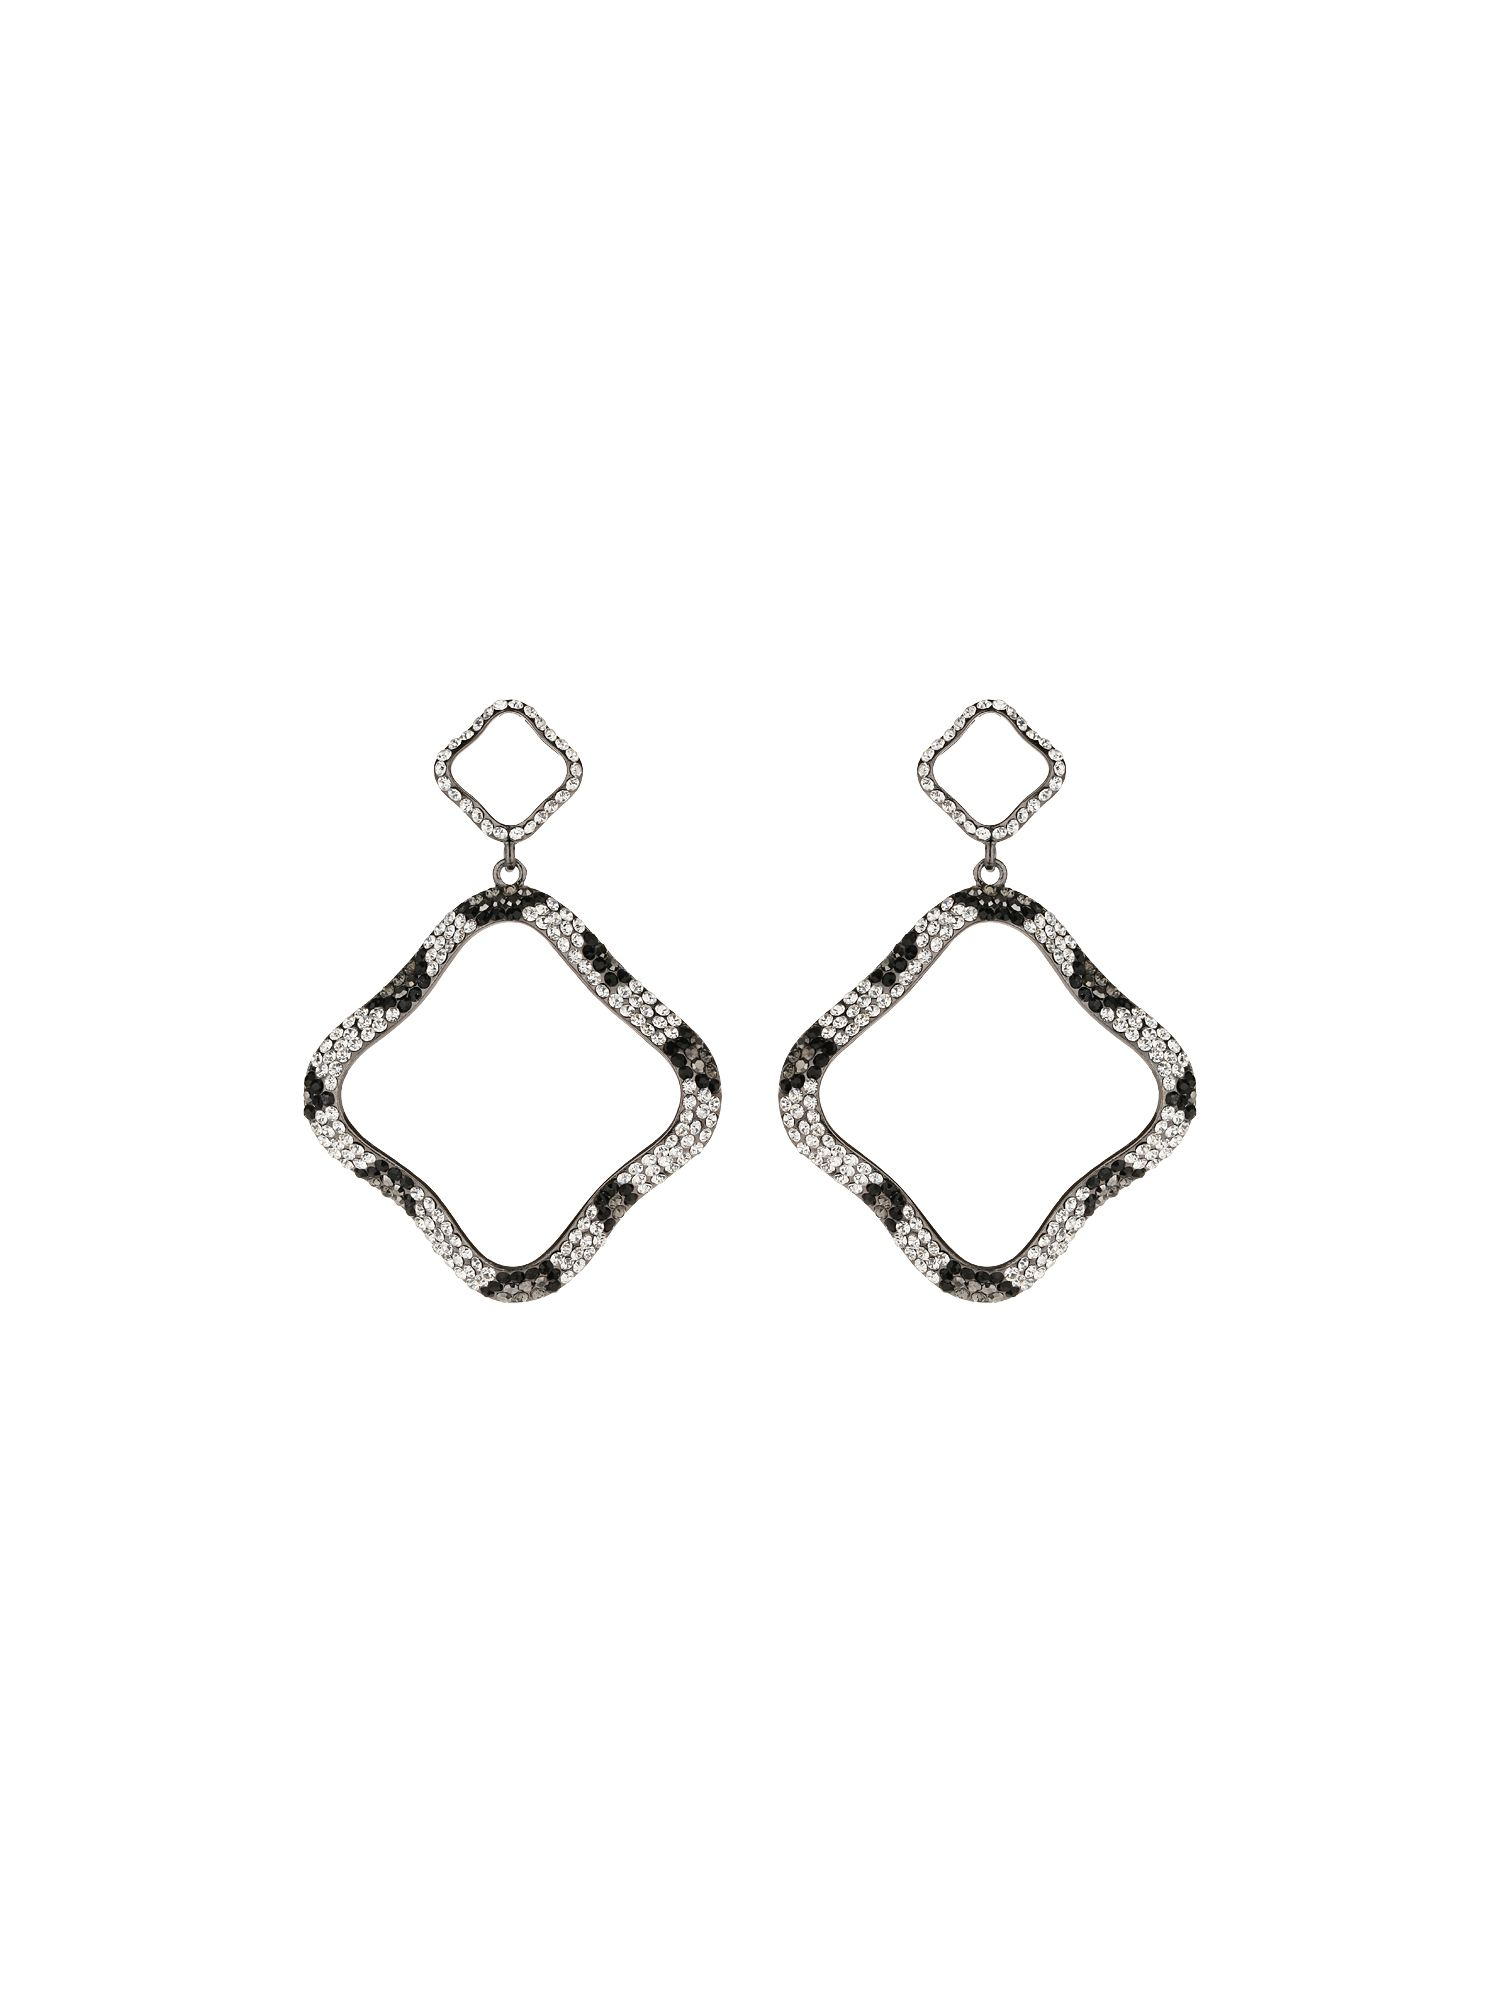 Twisted square earrings